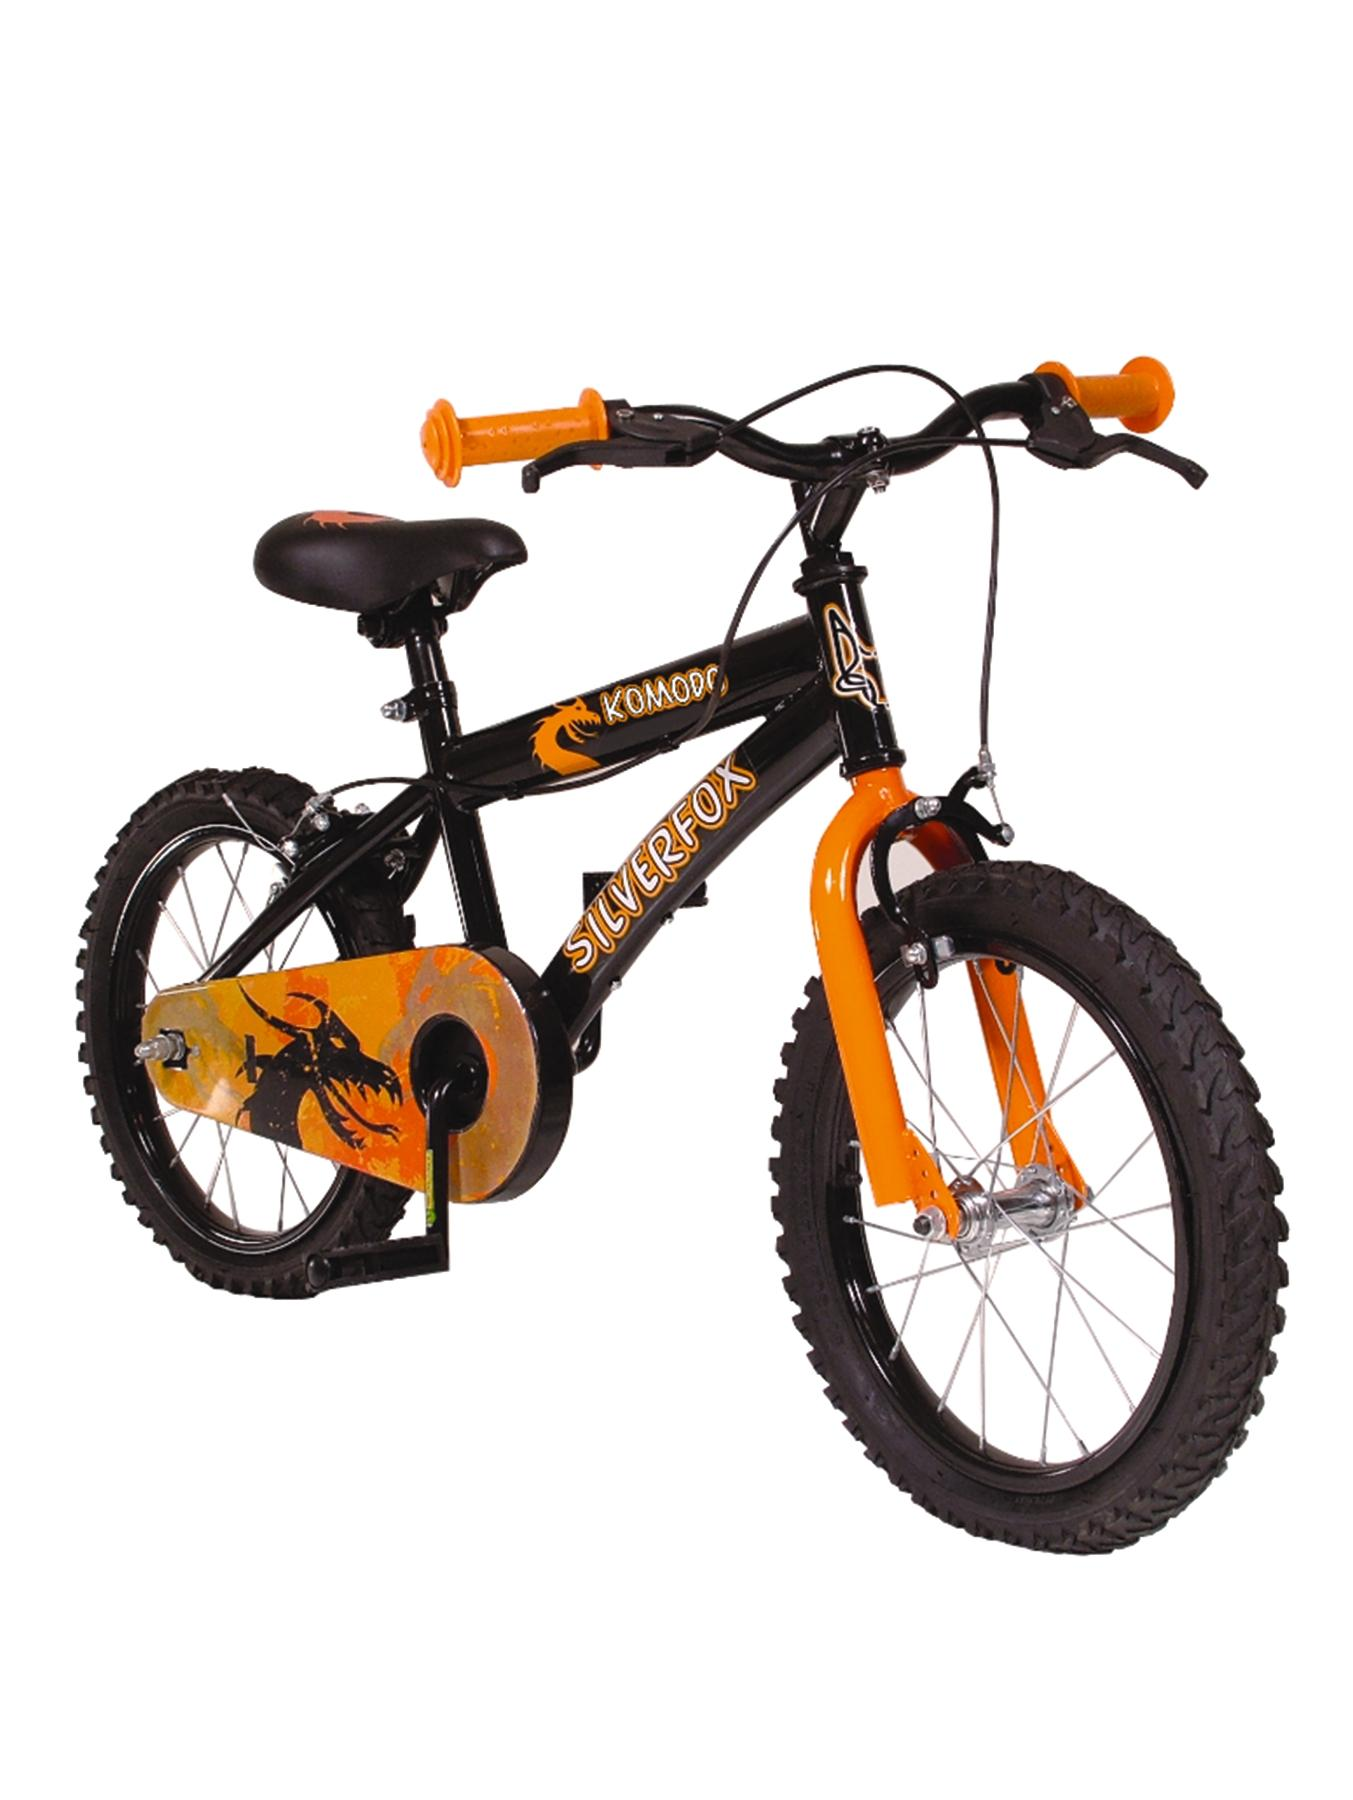 Bikes For Toddlers 3-4 Years Komodo inch Boys Bike